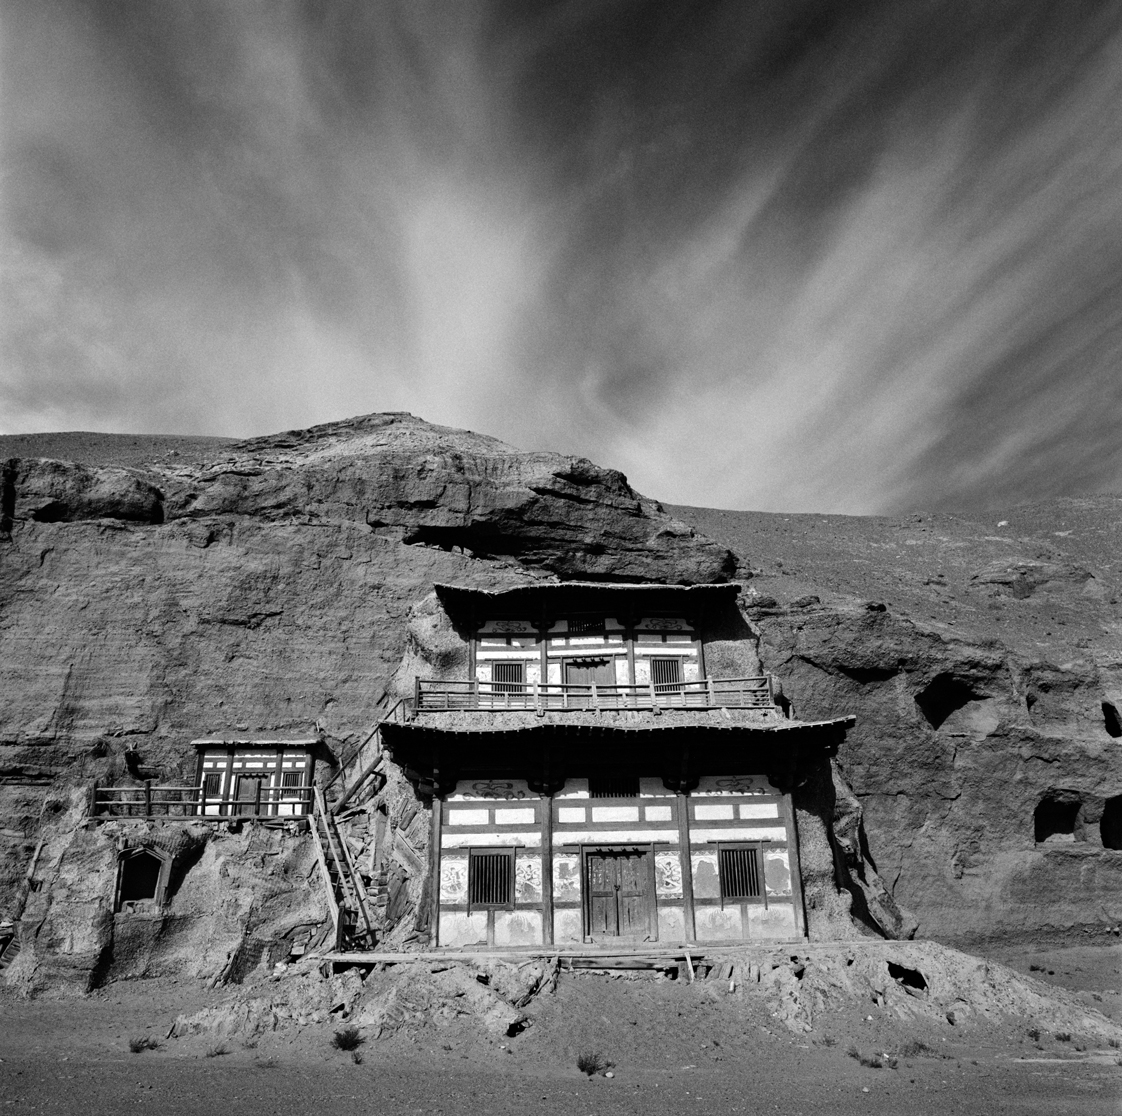 Part of the Mogao Caves site, where hundreds of rock-cut Buddhist grottoes are filled with frescoes and hand-molded clay sculptures.